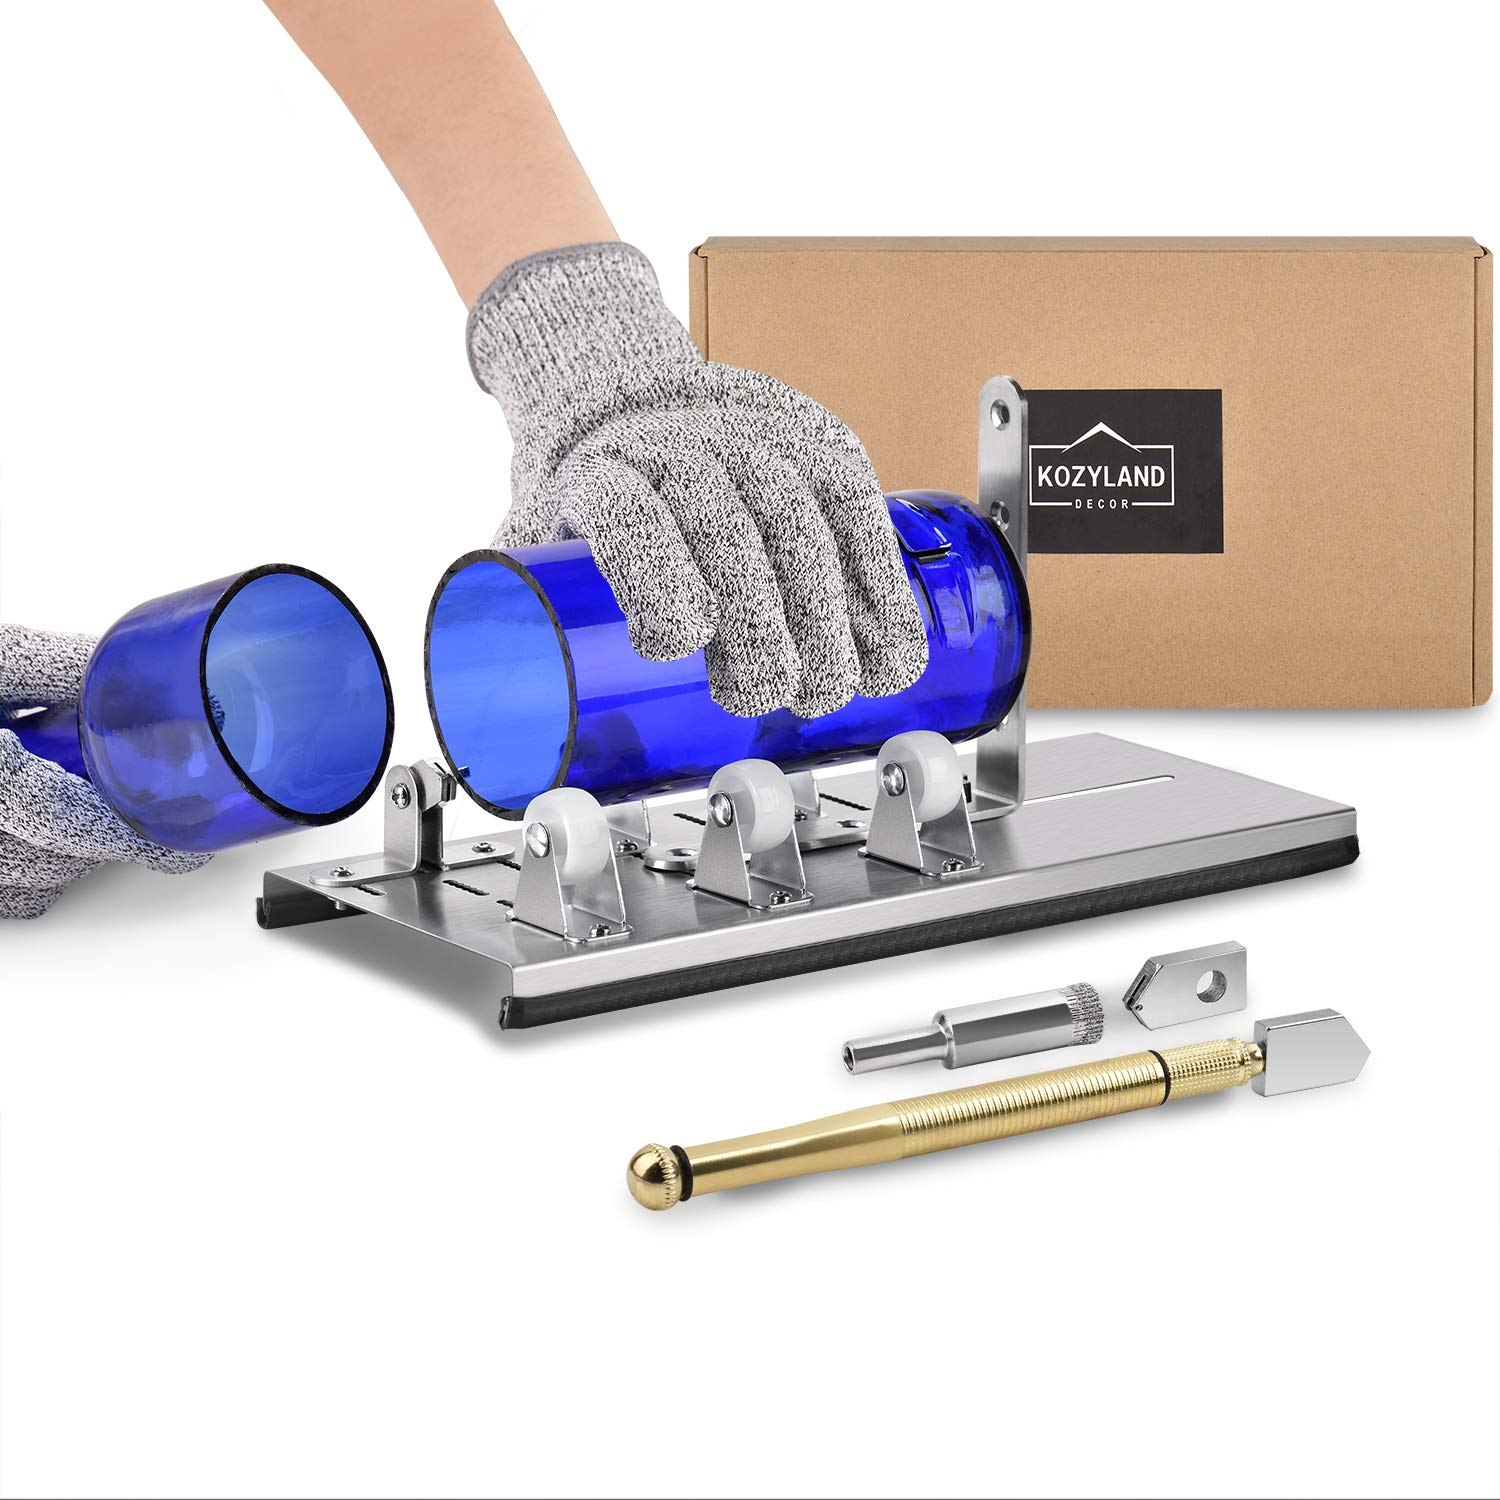 Bottle Cutter & Glass Cutter Kit, for Cutting Wine Bottle or Jars to Craft Glasses, (Gloves Not Included) by Kozyland